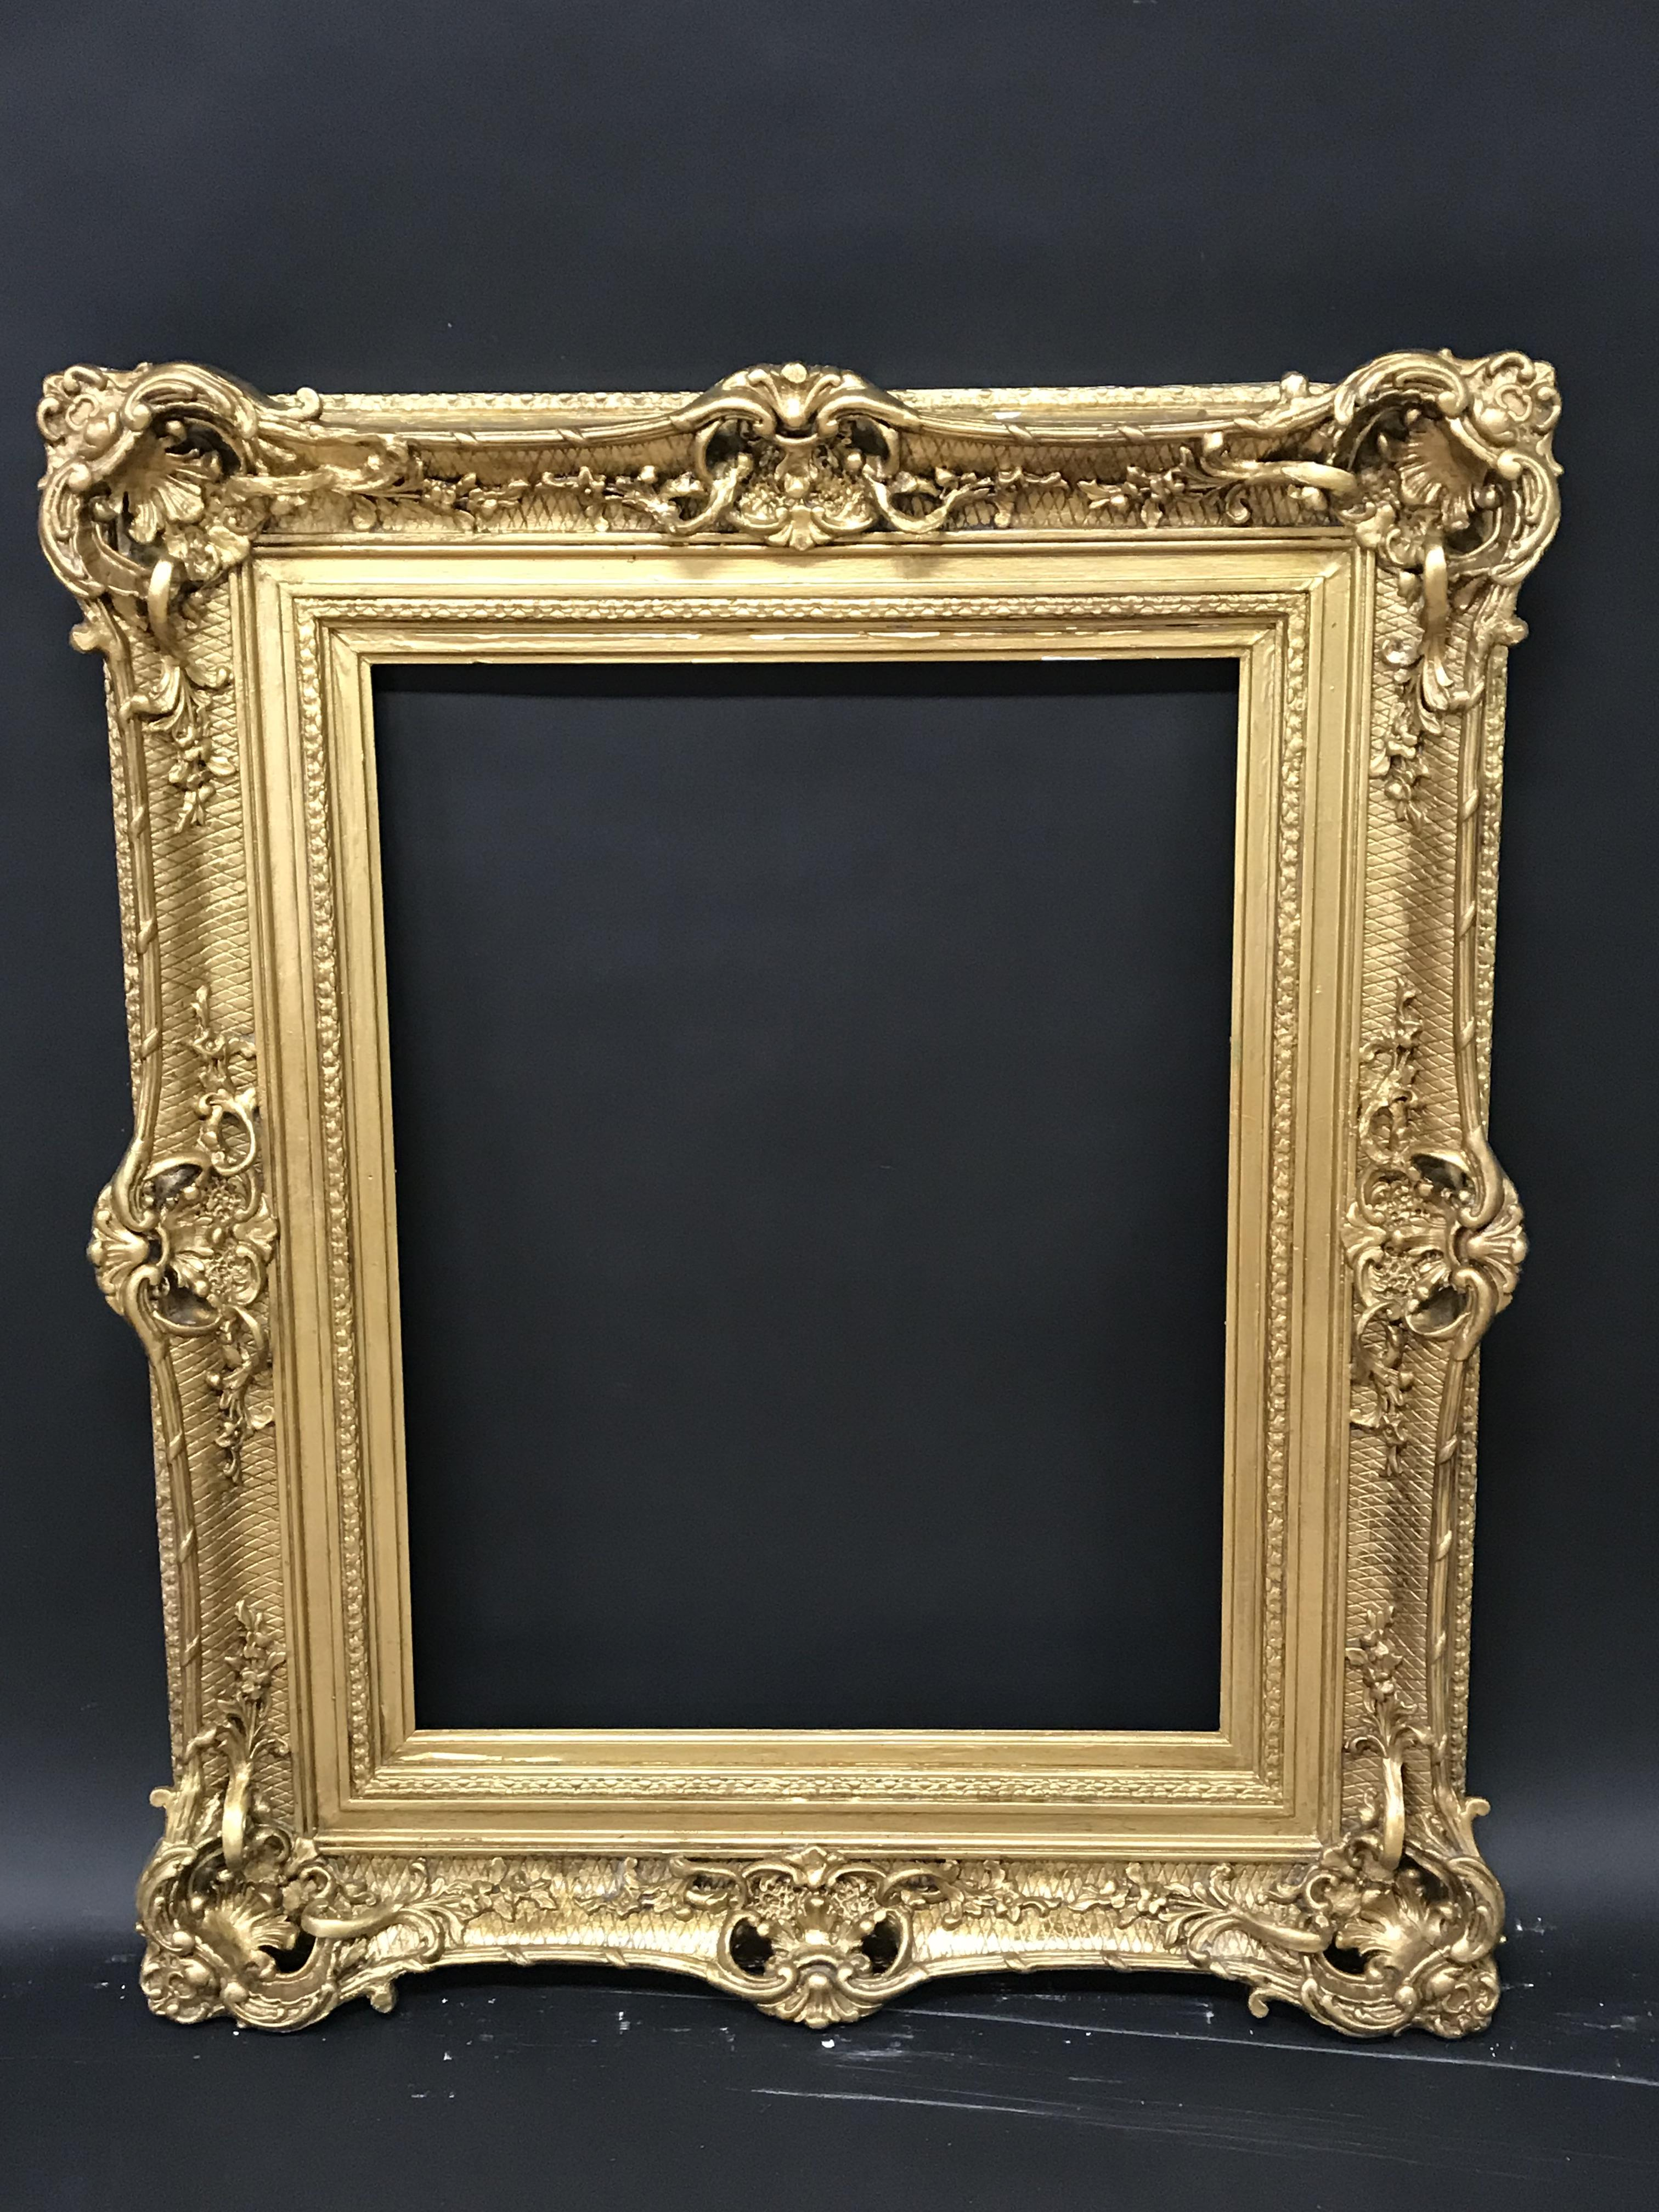 Lot 17 - 19th Century English School. A Gilt Composition Frame, with Swept and Pierced Centres and Corners,